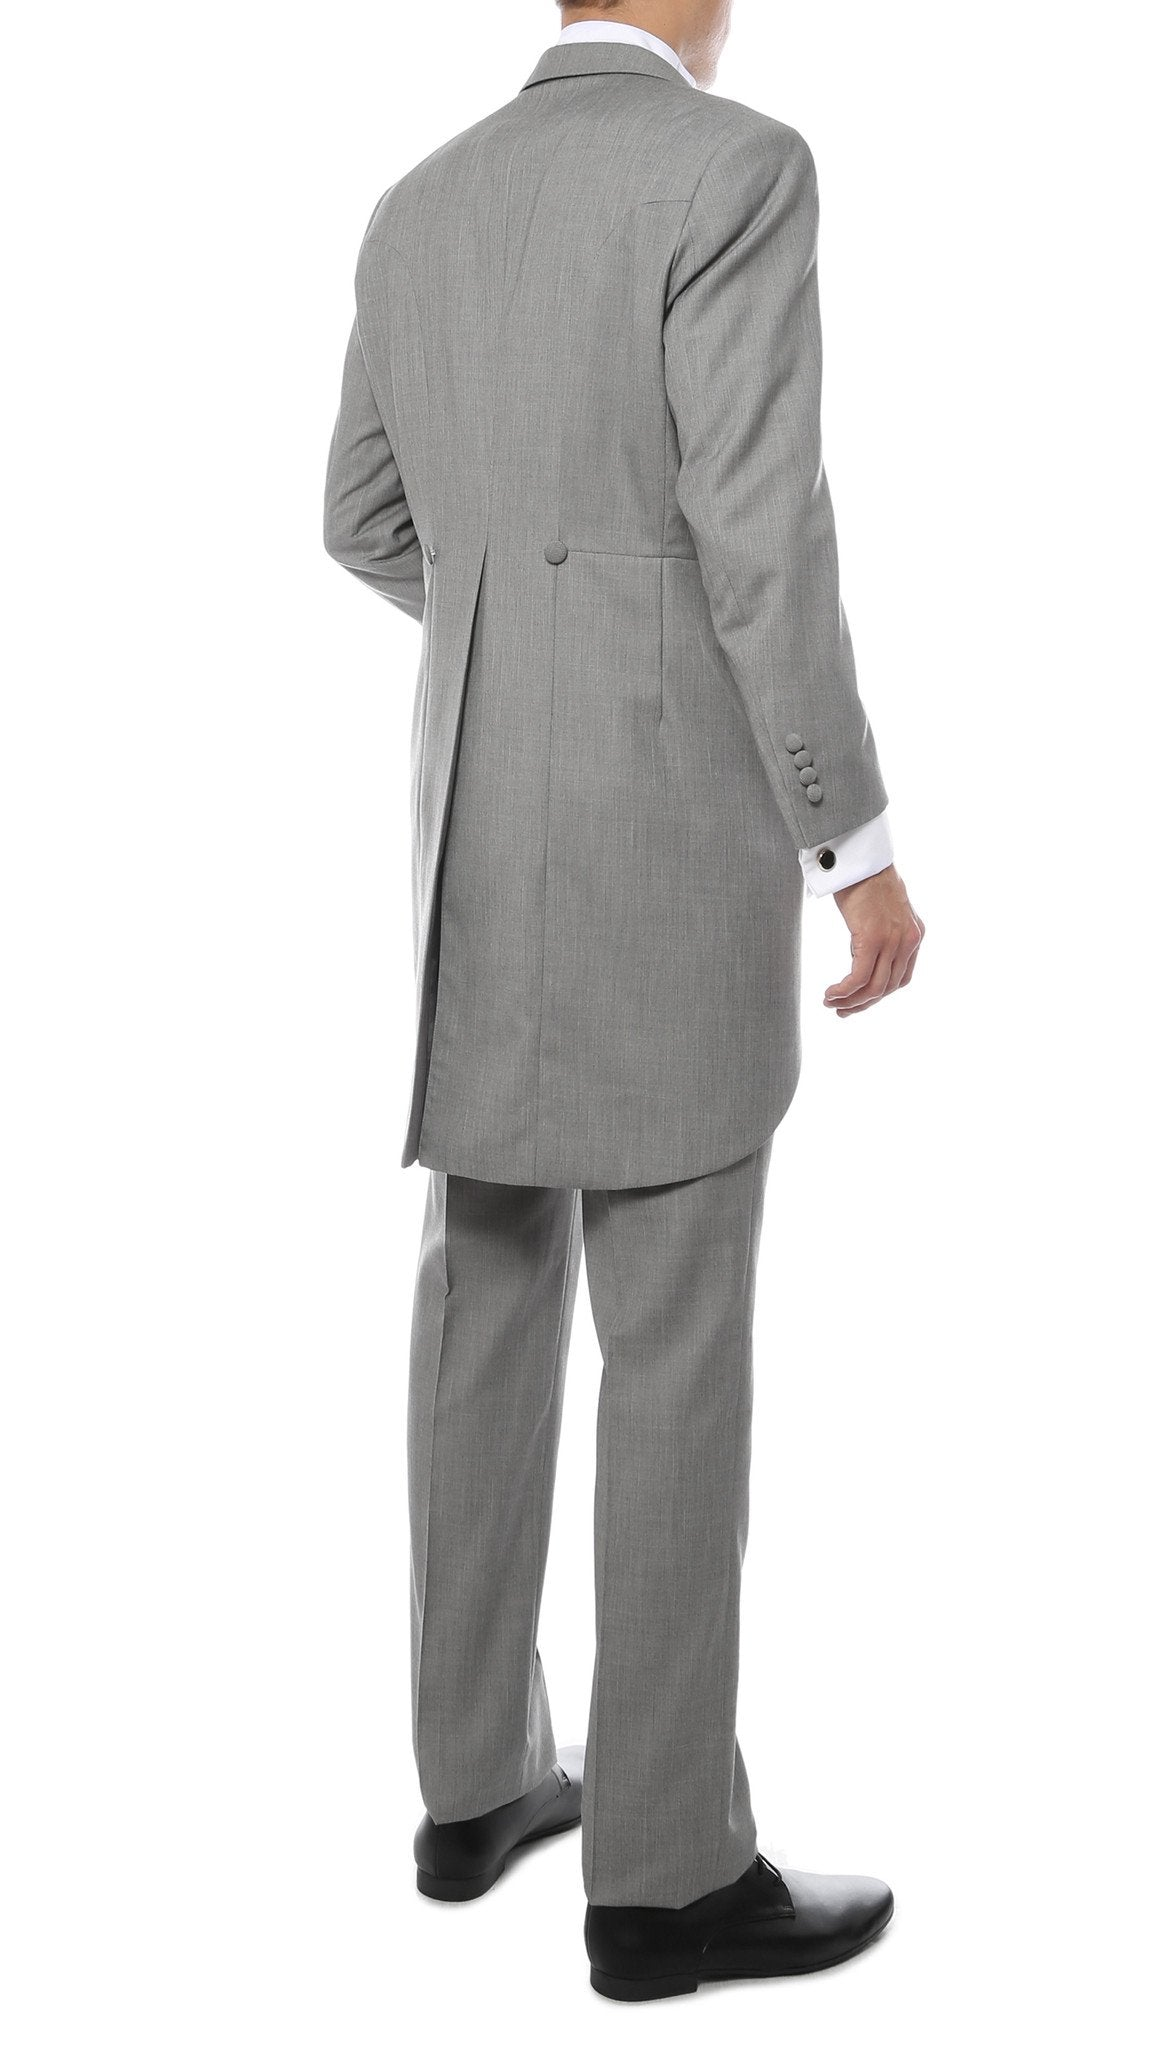 Mens Grey Cutaway Regular Fit Tuxedo 2pc Suit - Giorgio's Menswear